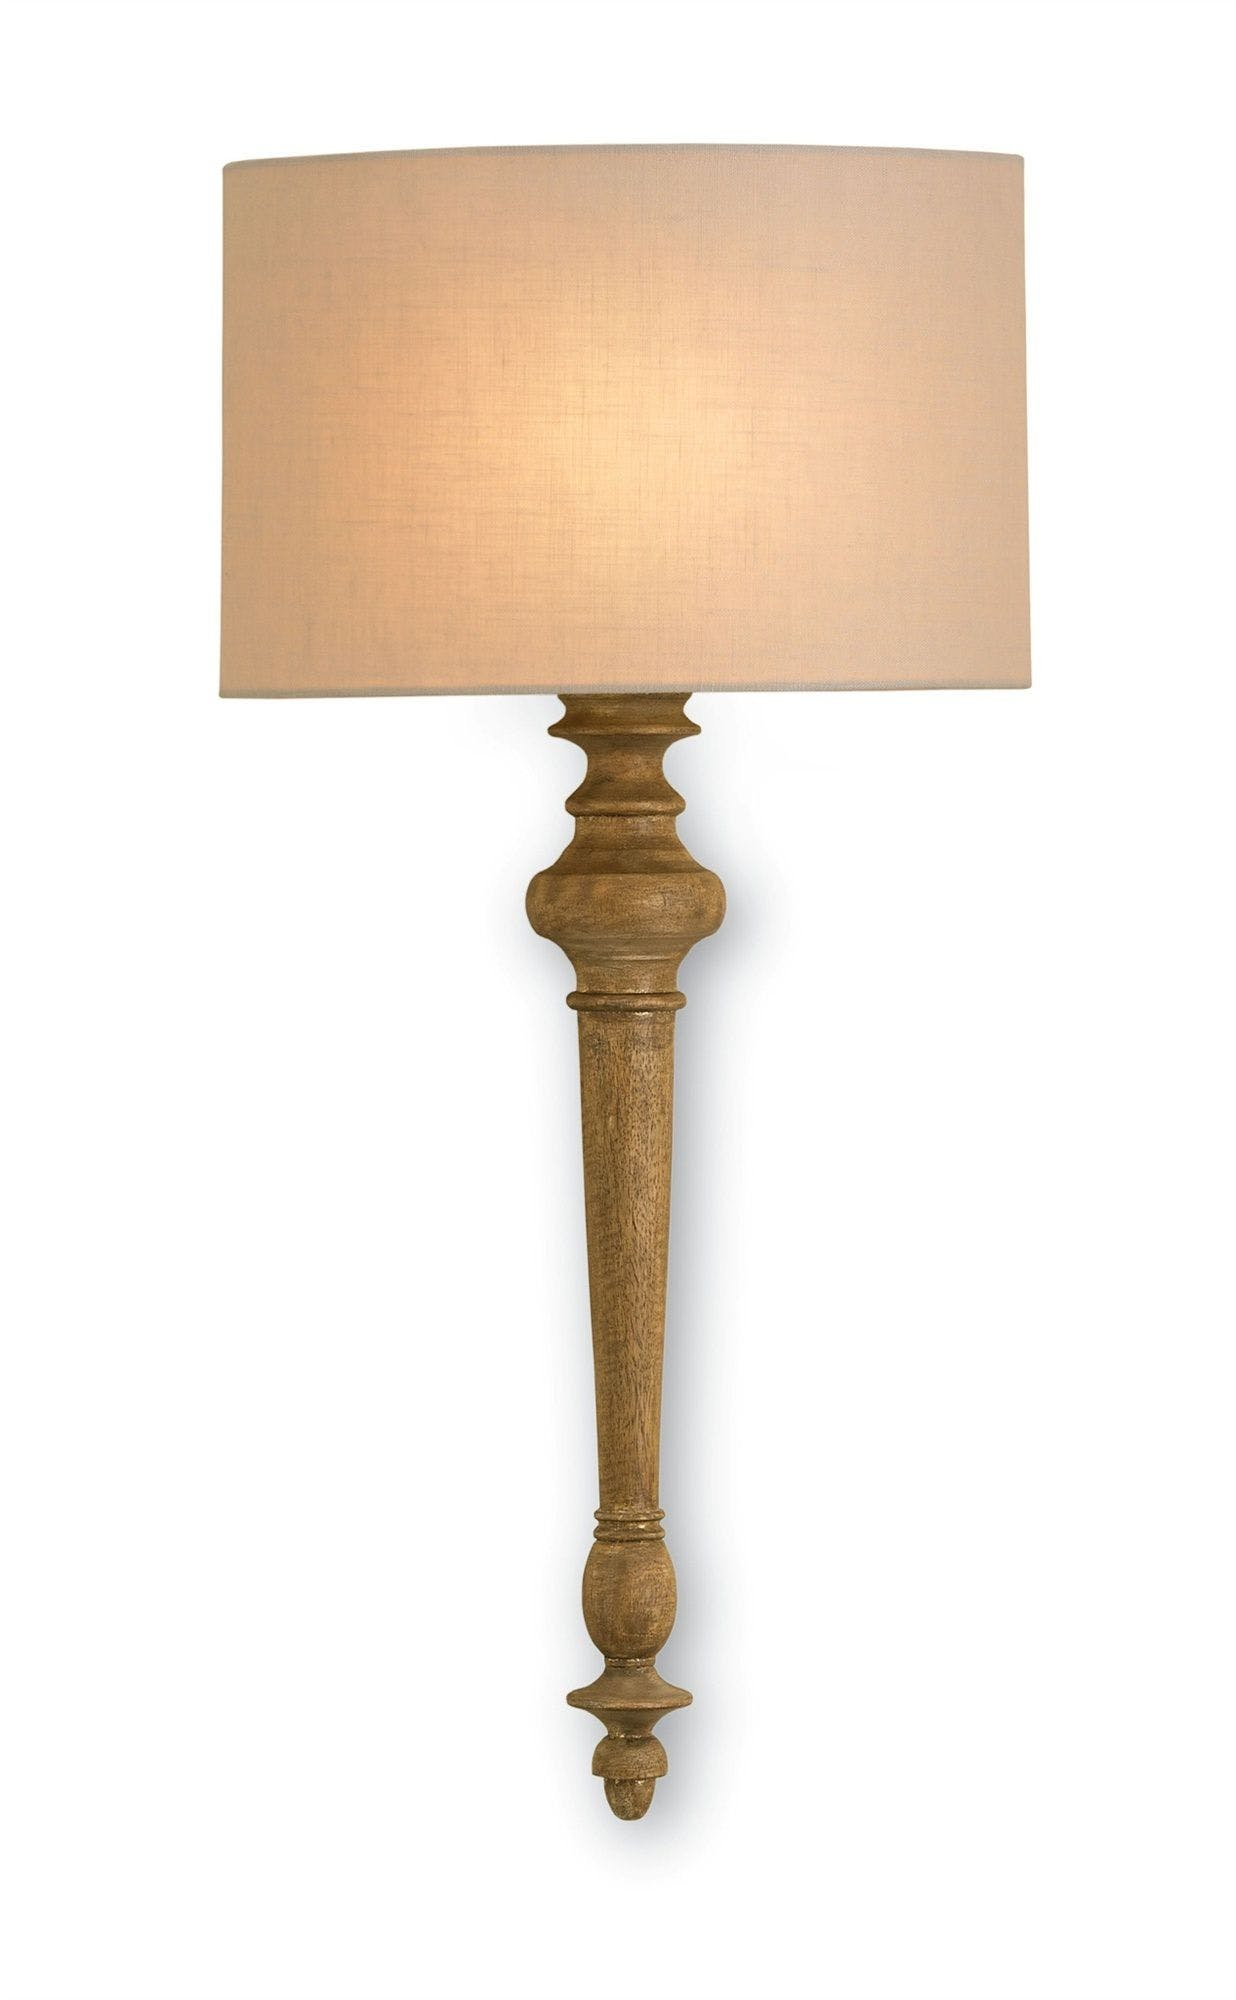 Currey And Company Lamps And Lighting Jargon Wall Sconce Cy5091 Walter E Smithe Furniture Design